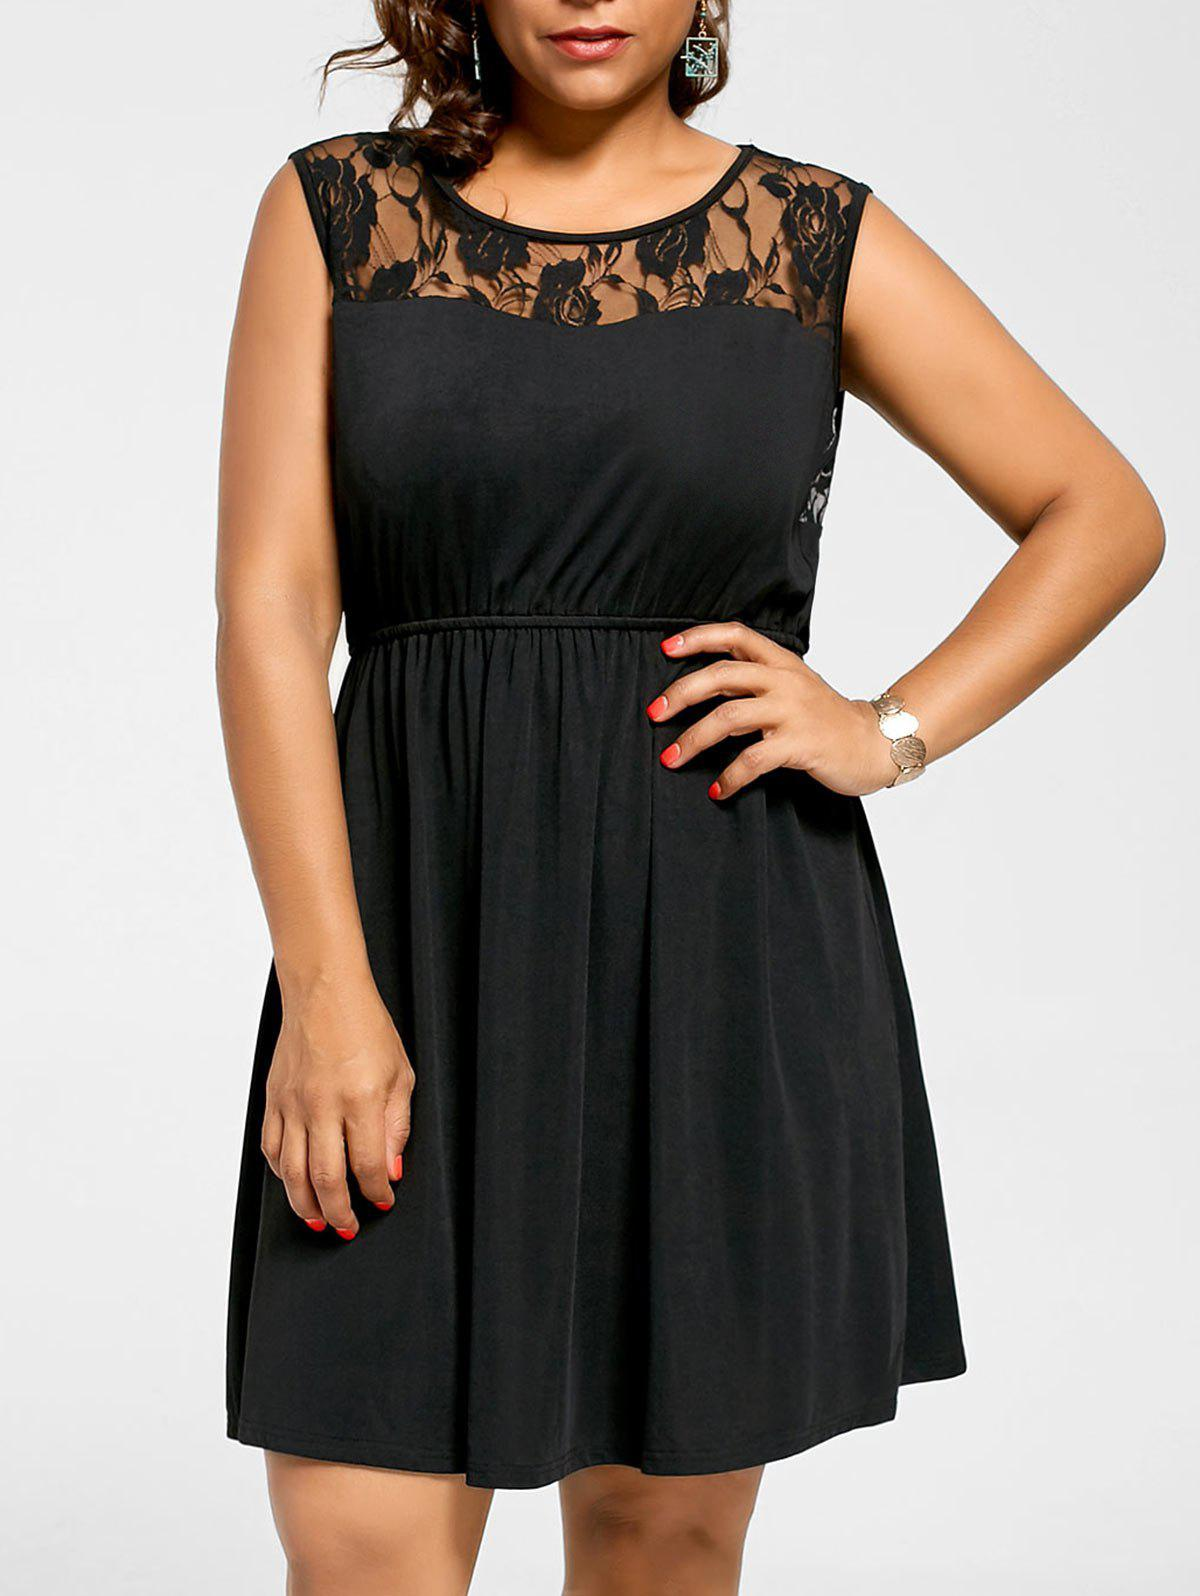 Sleeveless Plus Size Lace Yoke Skater DressWOMEN<br><br>Size: 4XL; Color: BLACK; Style: Brief; Material: Polyester; Silhouette: A-Line; Dresses Length: Knee-Length; Neckline: Round Collar; Sleeve Length: Sleeveless; Embellishment: Lace; Pattern Type: Floral; With Belt: No; Season: Summer; Weight: 0.3500kg; Package Contents: 1 x Dress;